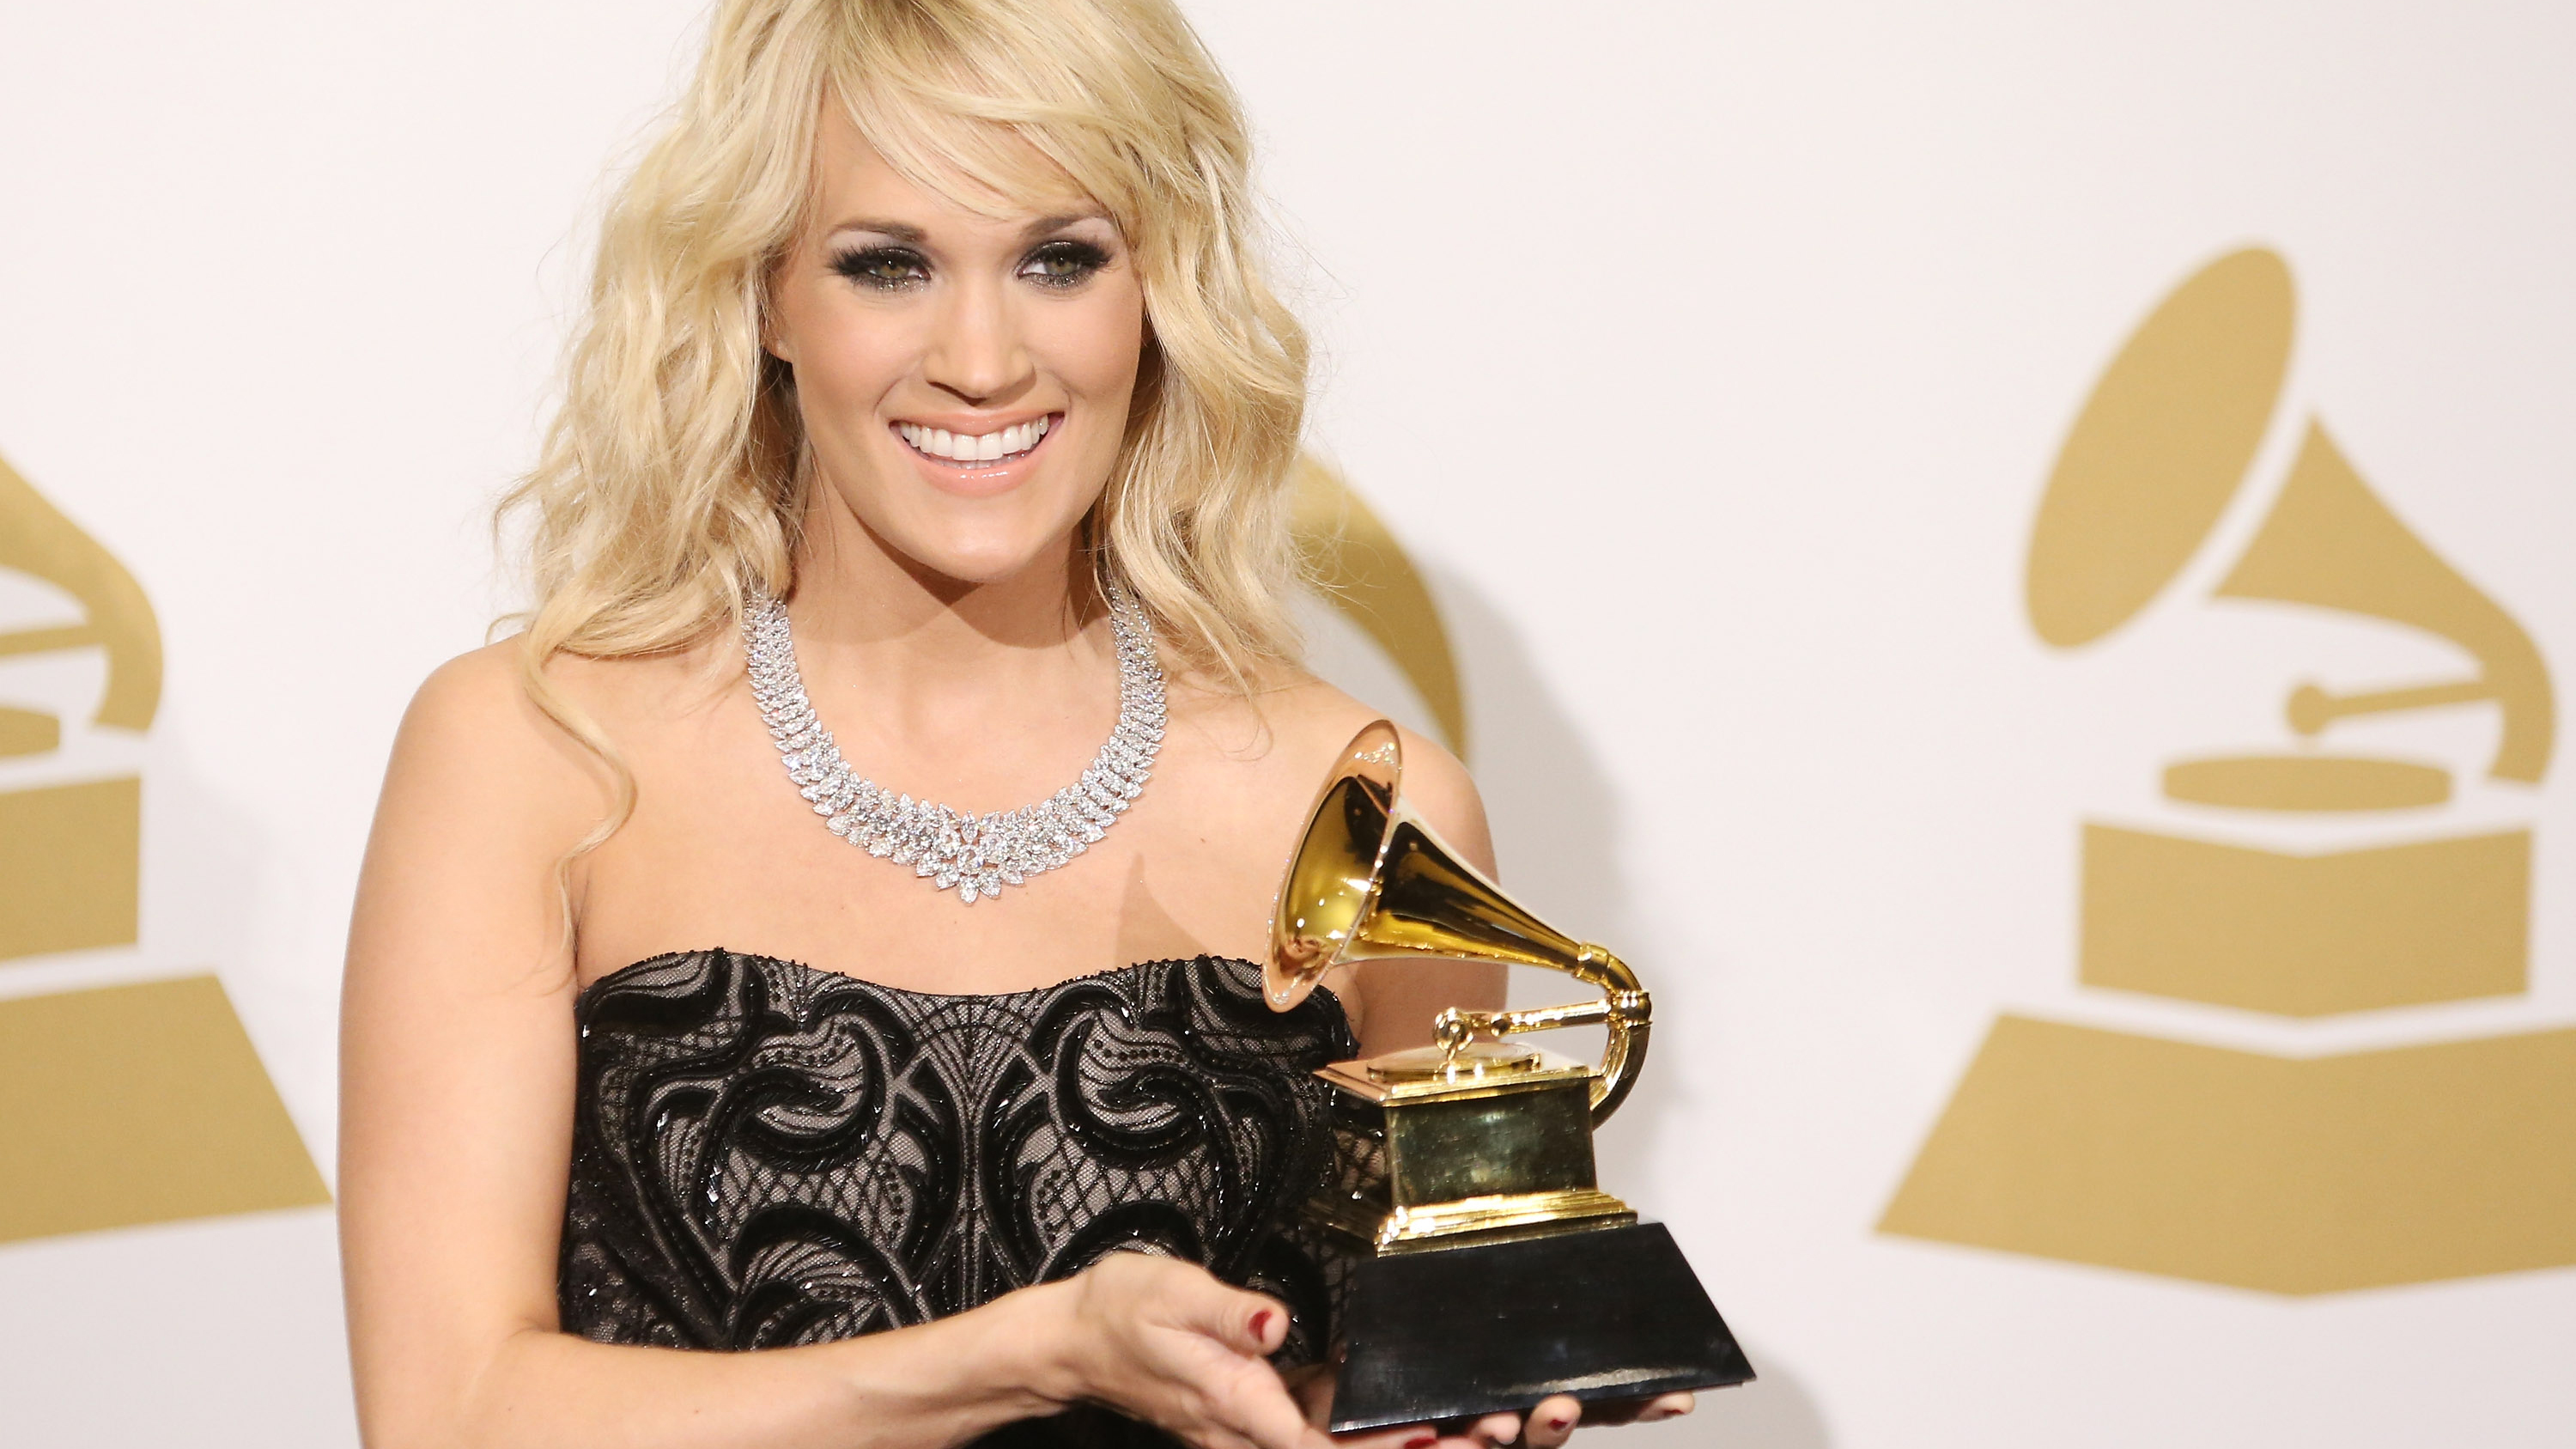 Carrie Underwood On The One Thing That Boosts Her Mental Health